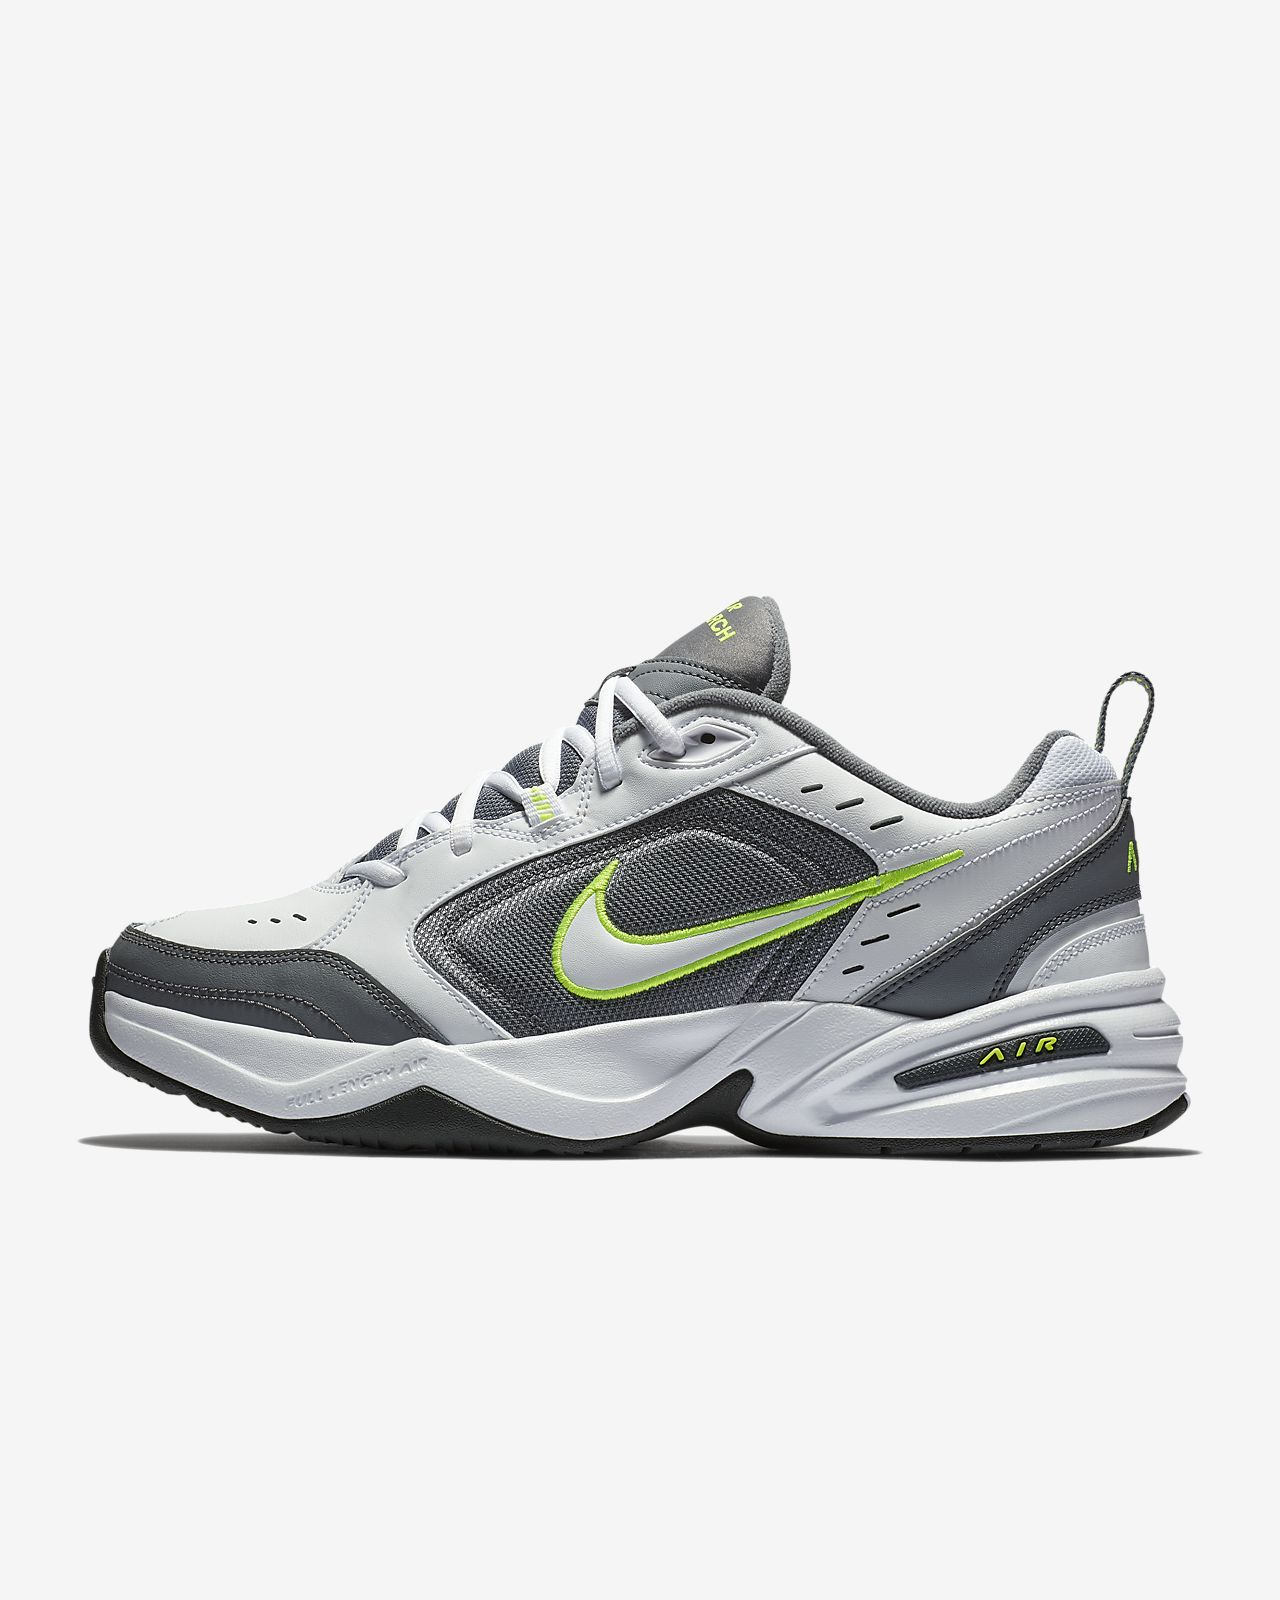 free shipping 2a401 de07e ... Nike Air Monarch IV Lifestyle Gym Shoe